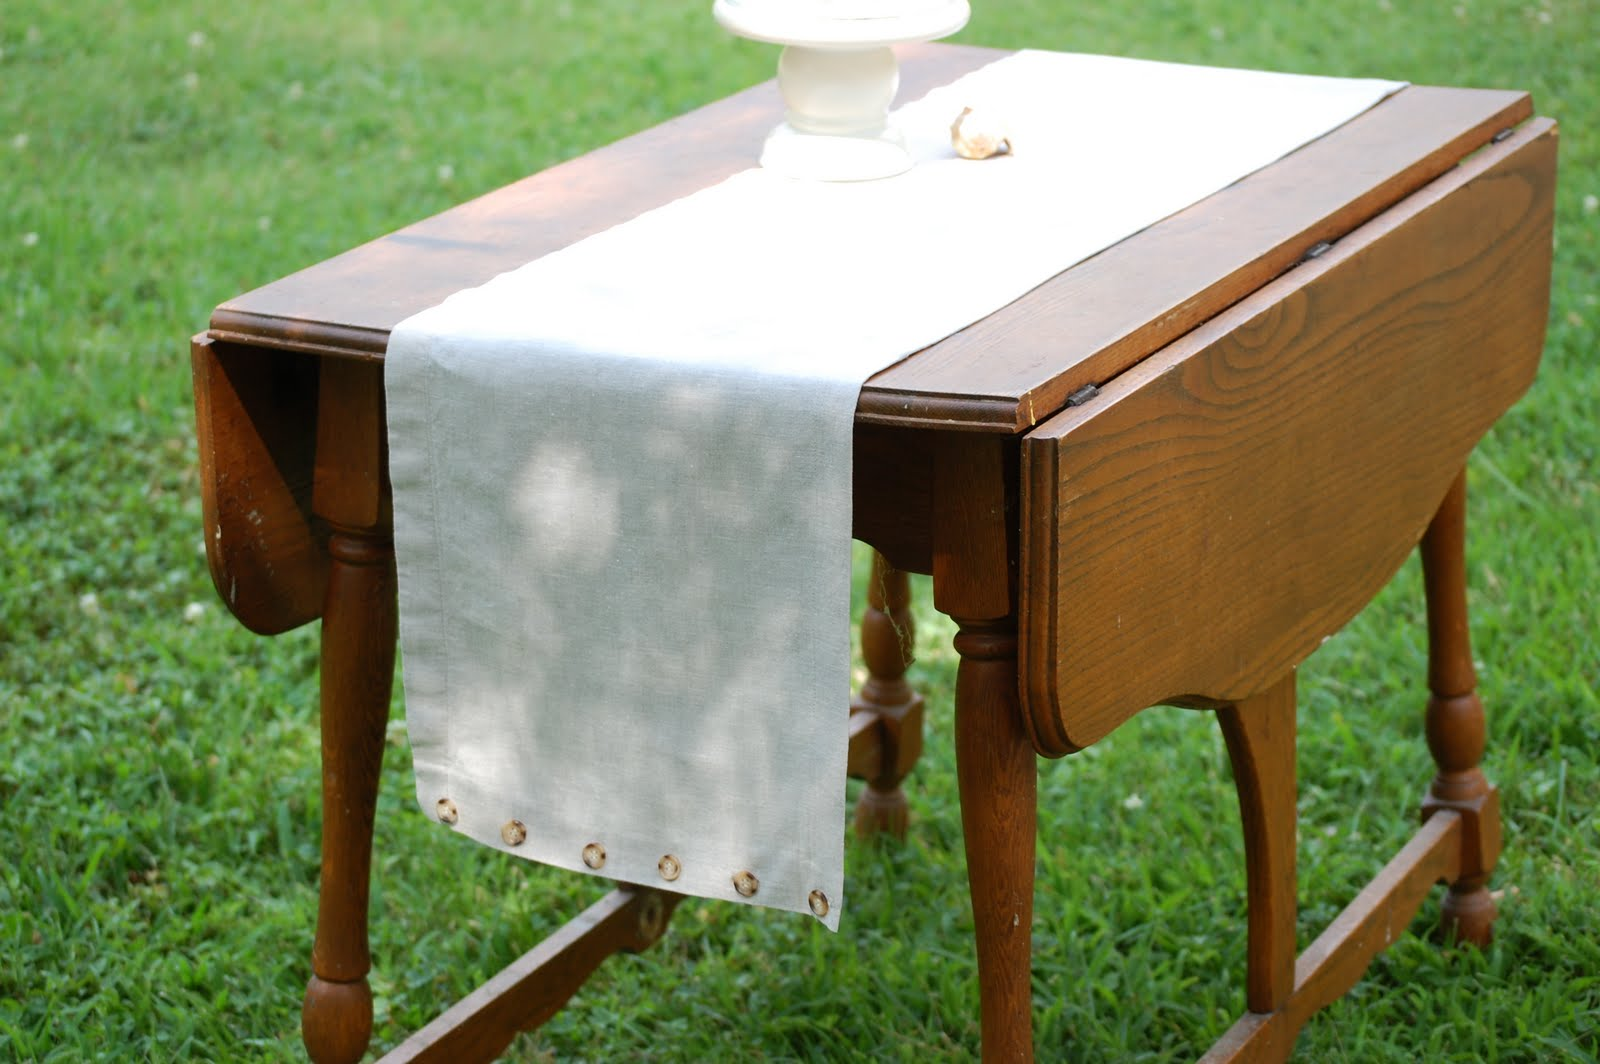 Tidy Brown Wren, bringing order to your nest: Upcycled Linen Table